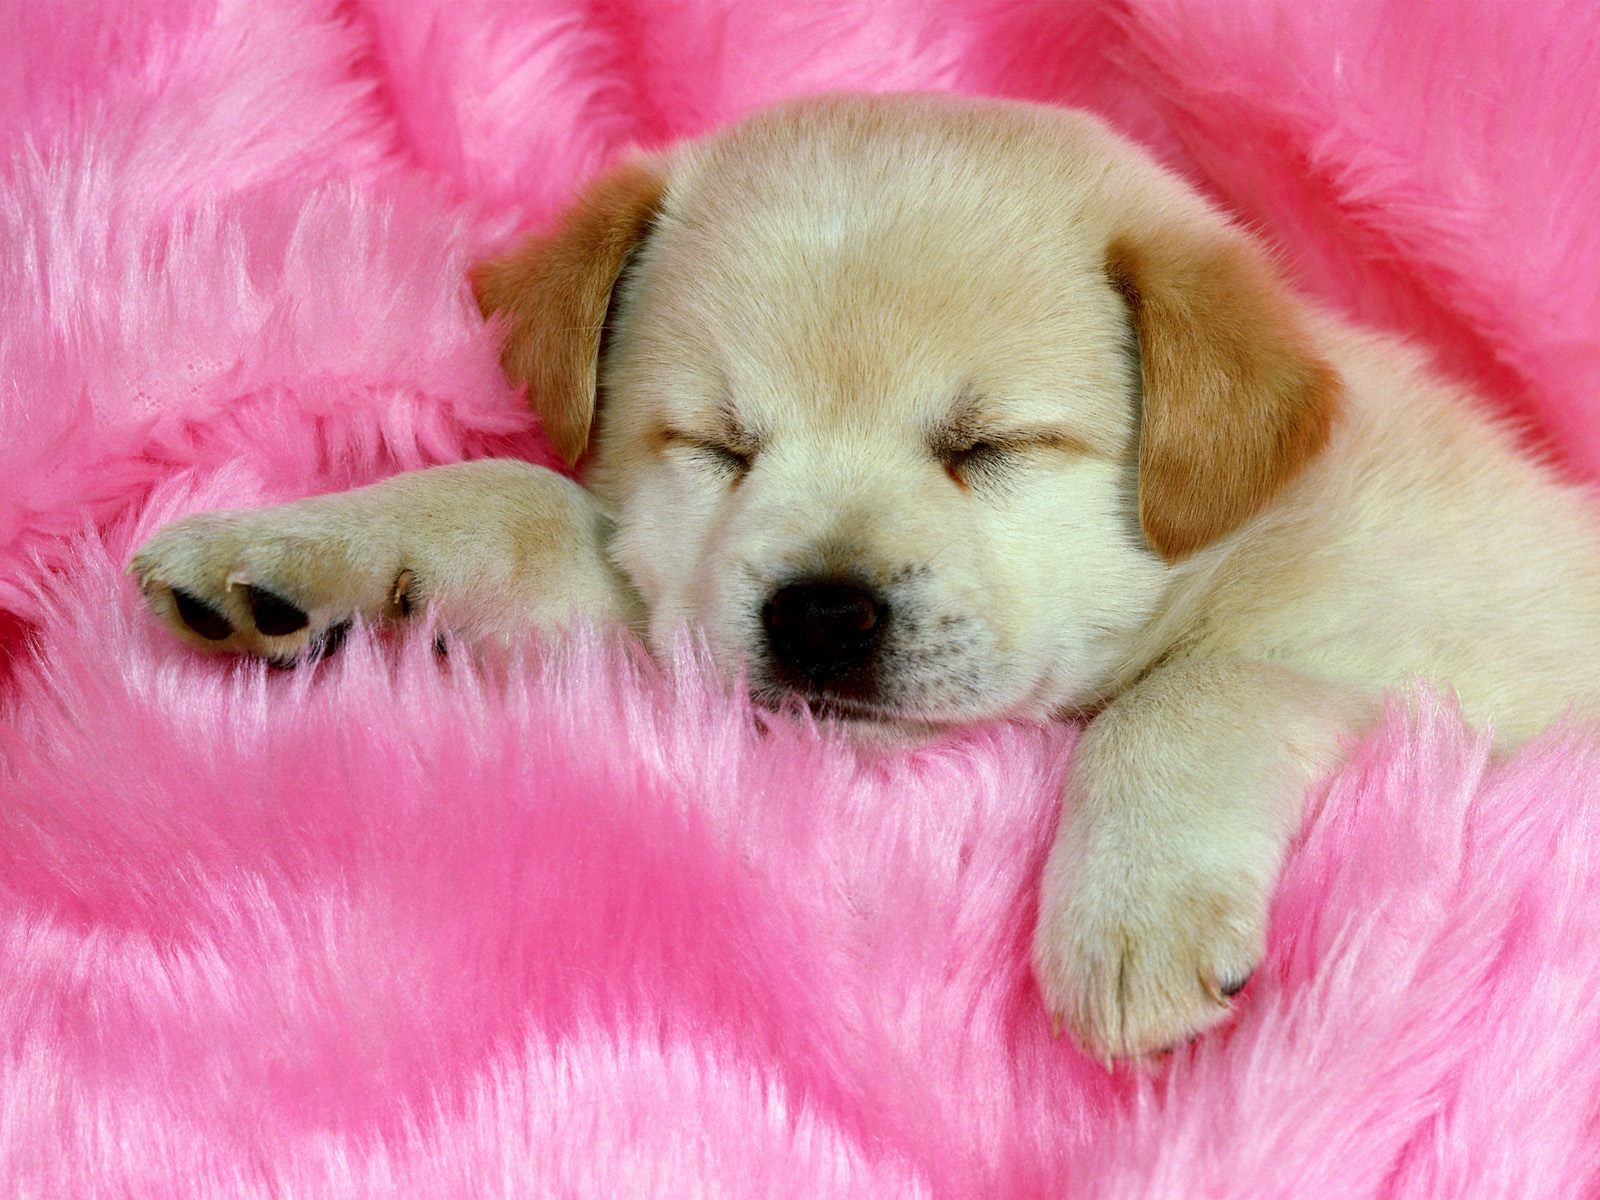 20 Free Cute Puppy Dogs Puppies Wallpapers Hd Download Cute Dog Wallpaper Sleeping Puppies Baby Dogs